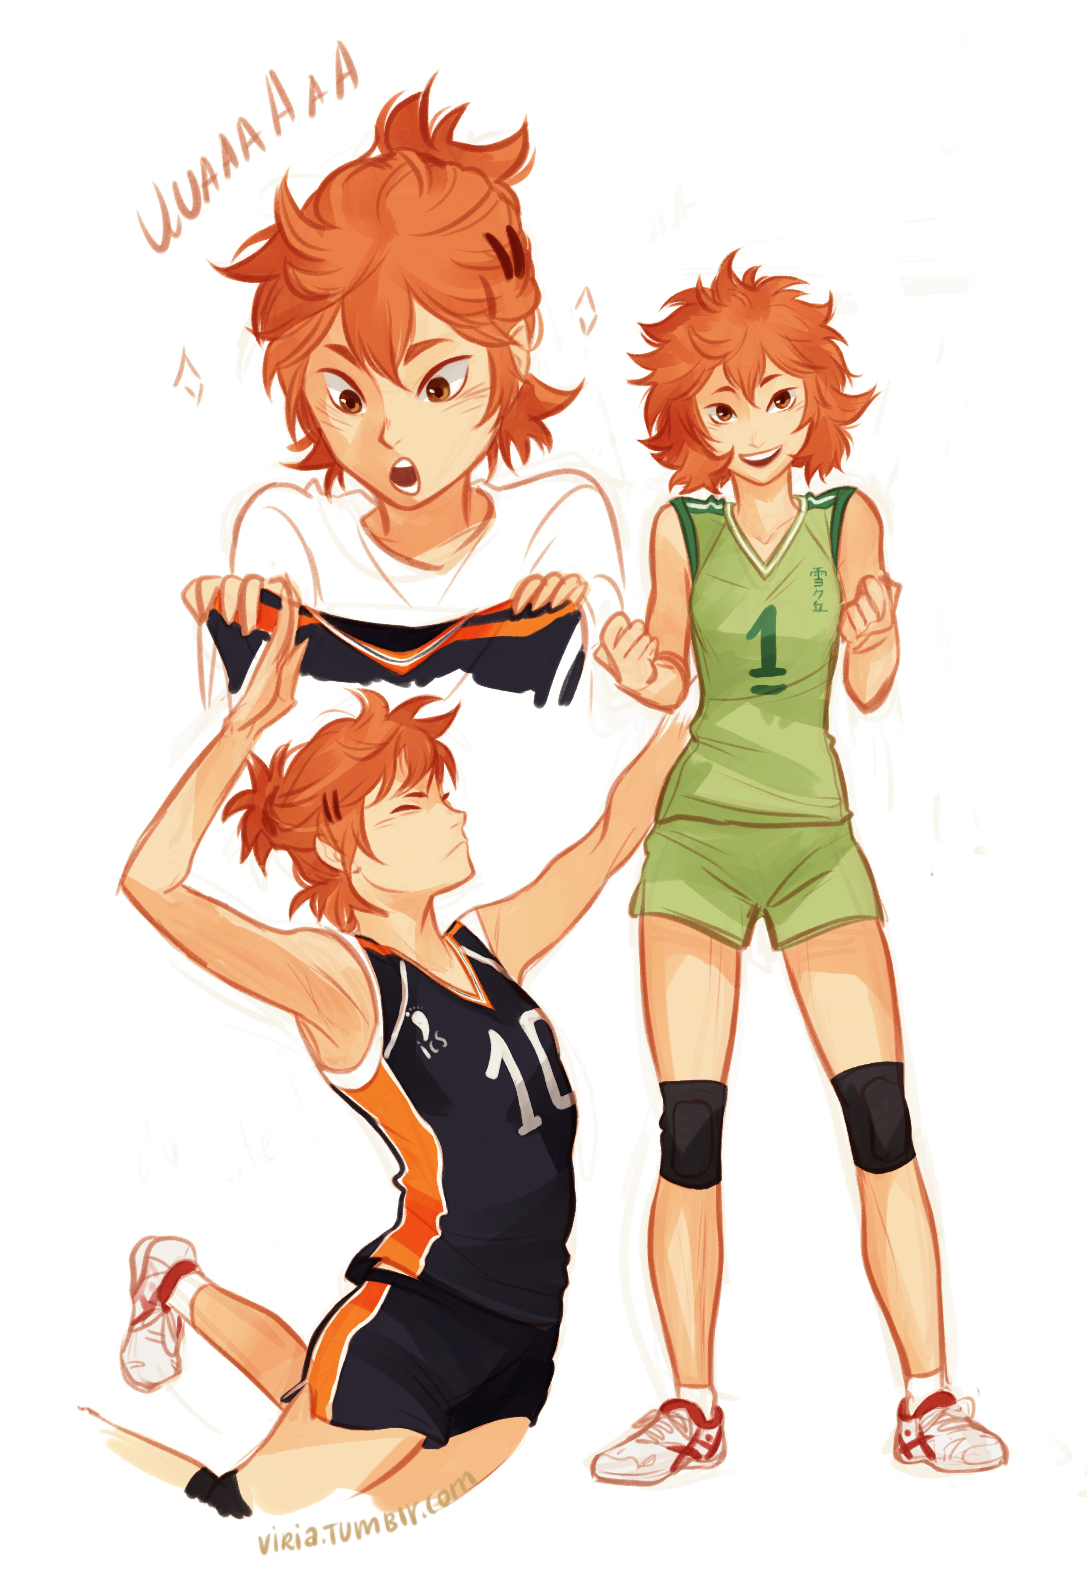 Shōyō Hinata | Haikyuu!! Wiki | FANDOM powered by Wikia